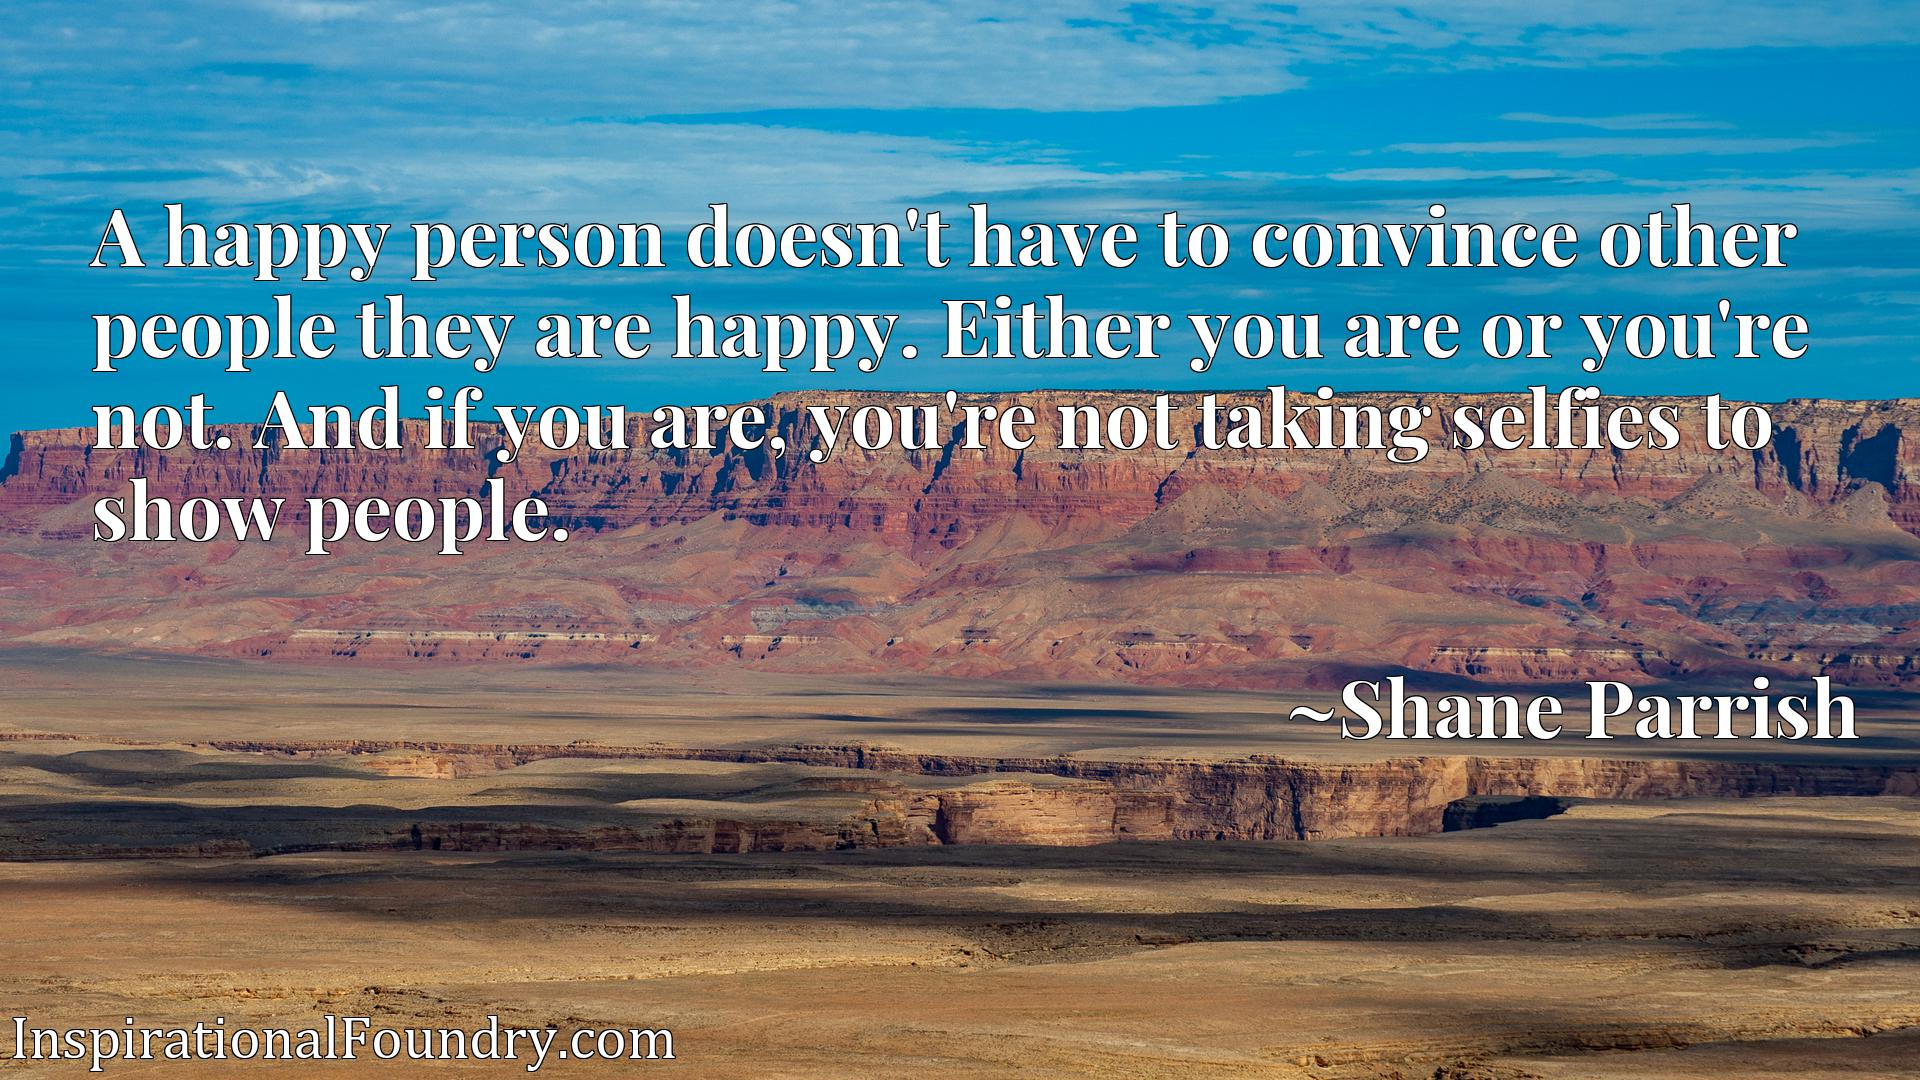 A happy person doesn't have to convince other people they are happy. Either you are or you're not. And if you are, you're not taking selfies to show people.